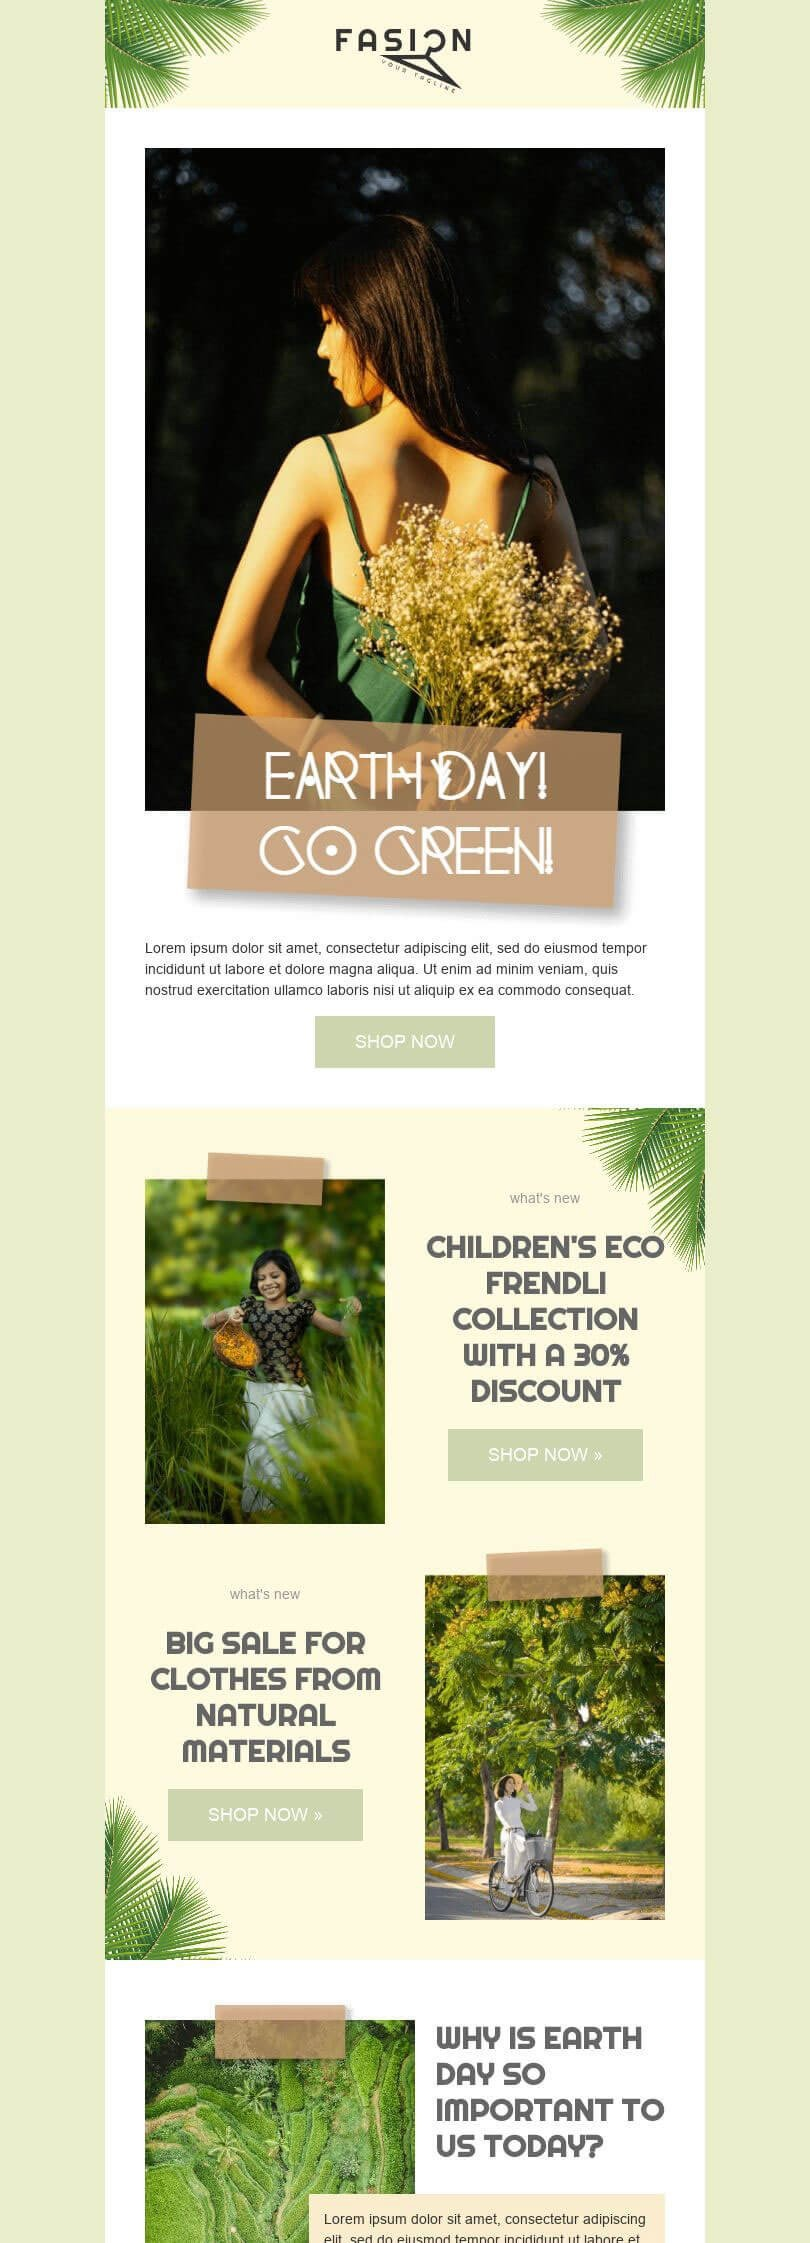 Earth Day Email Template «Go green» for Fashion industry desktop view